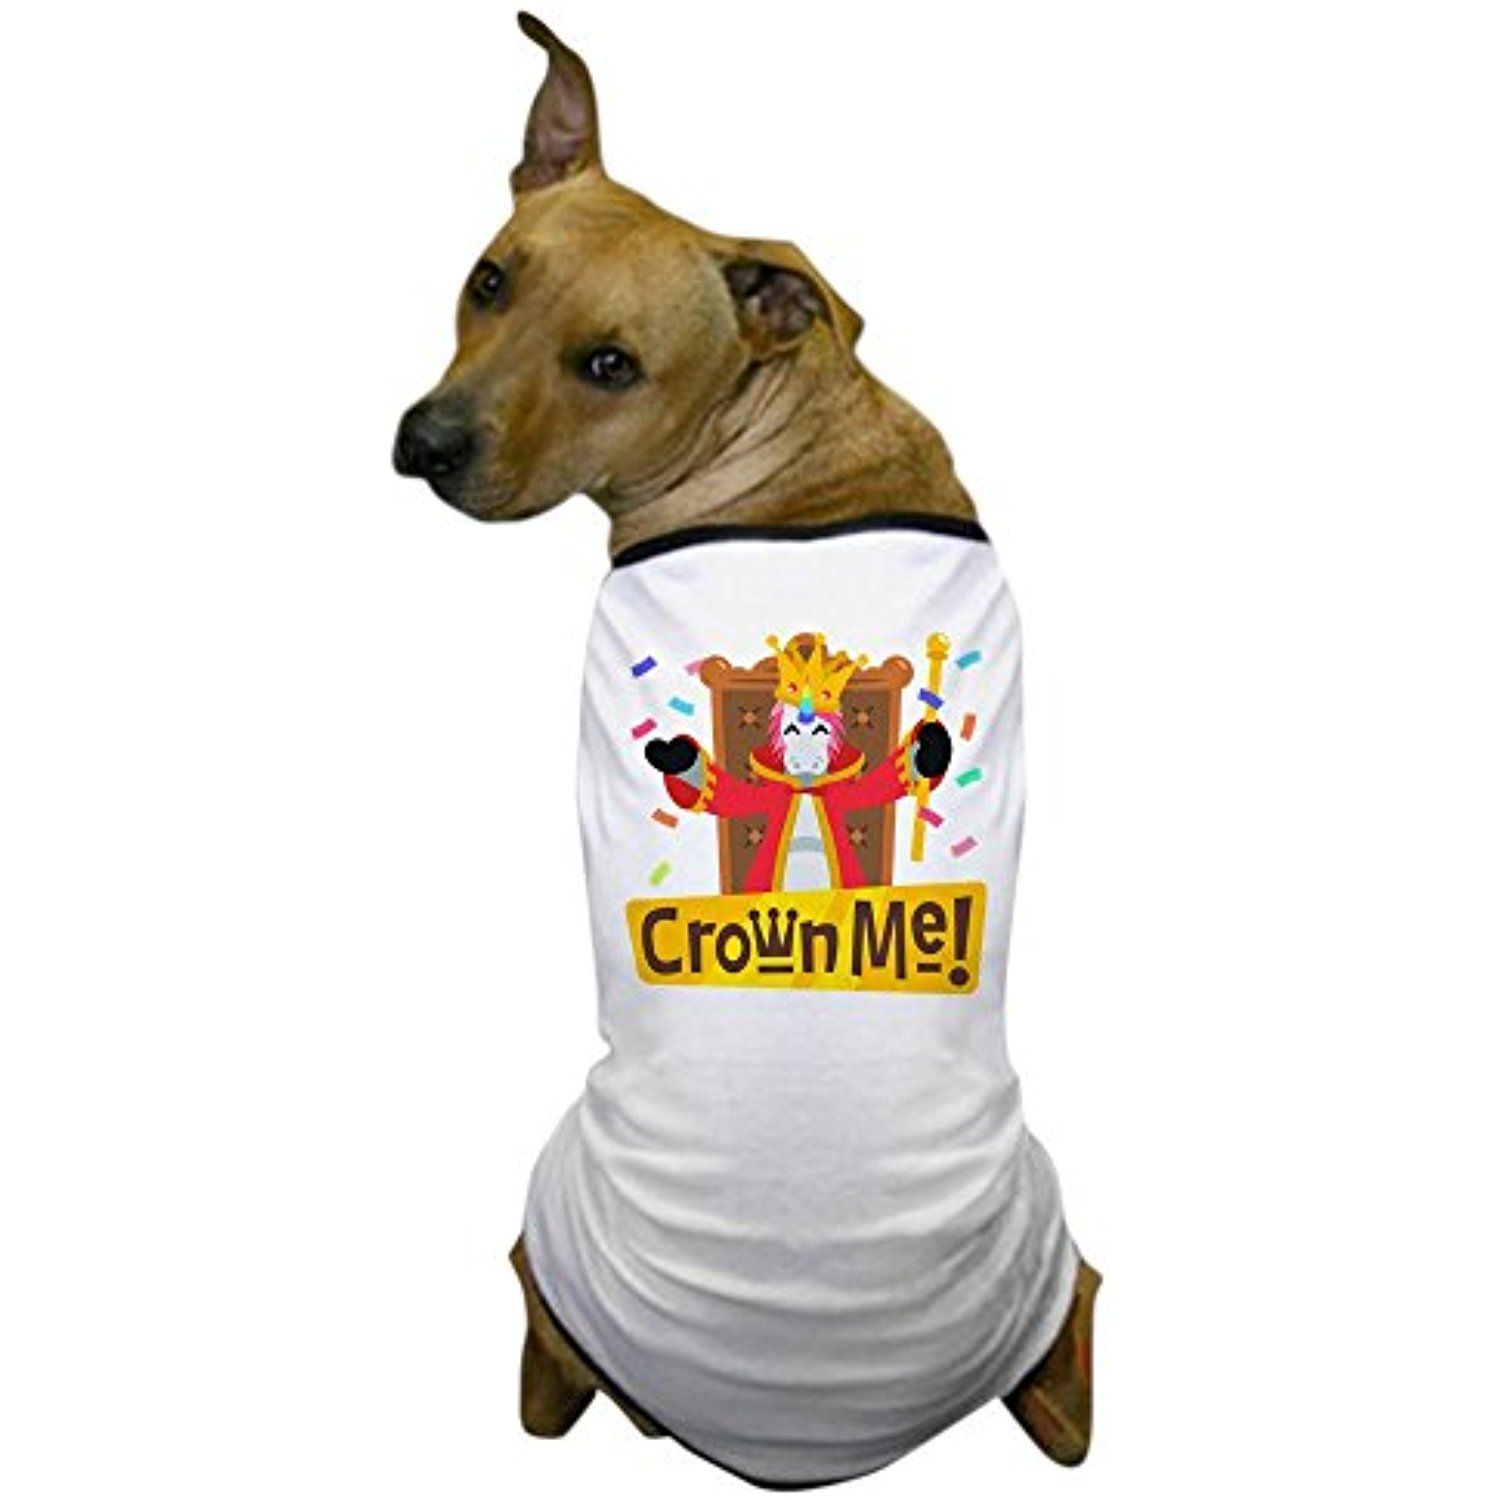 CafePress - Emoji Unicorn Crown Me - Dog T-Shirt Pet Clothing Funny Dog Costume -- Visit the image link more details.  sc 1 st  Pinterest : funny dog costumes  - Germanpascual.Com